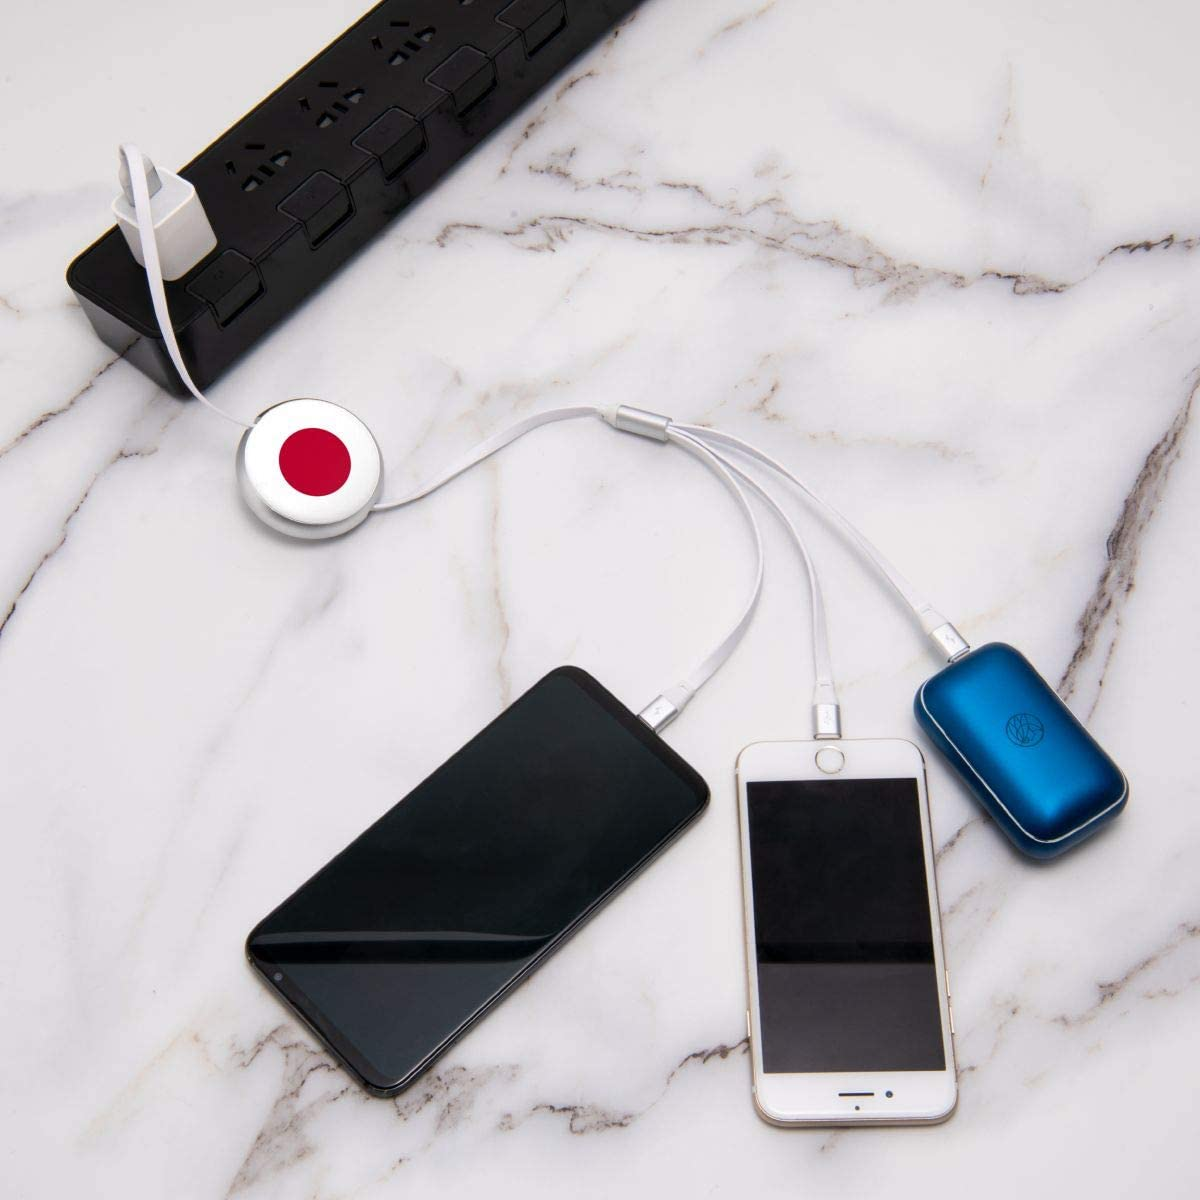 Japan Flag Three-in-one Round Data Cable Mini 3A USB Cable with Type-C Most Smart Phones /& Pads